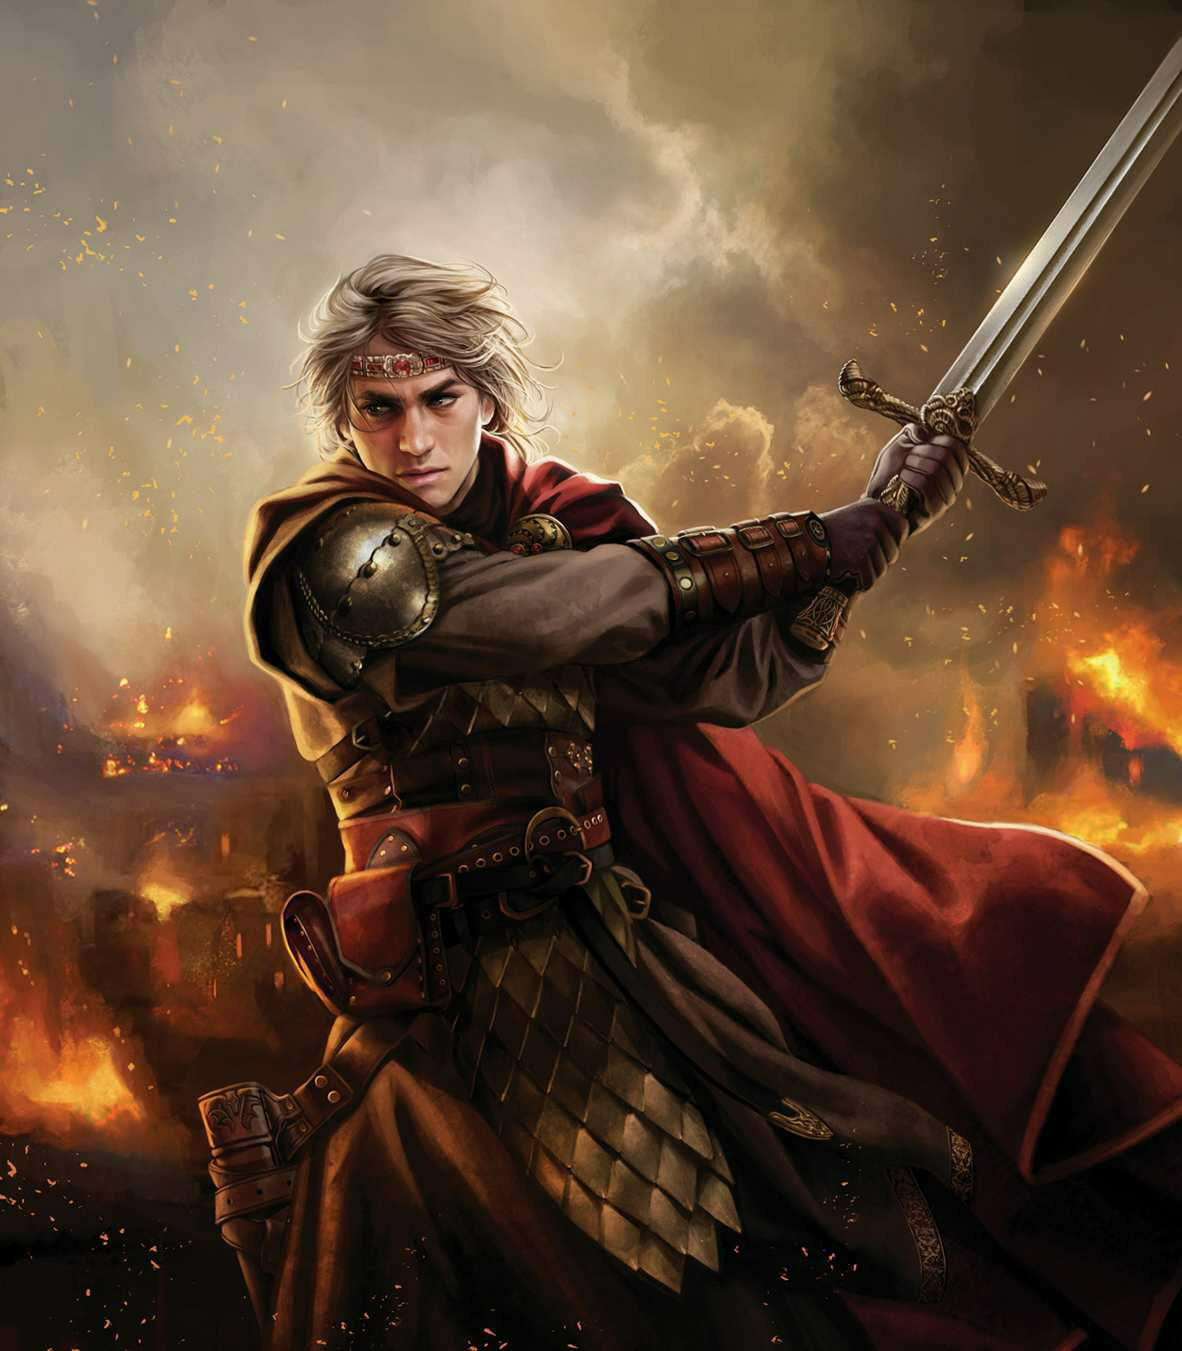 Aegon the Conqueror